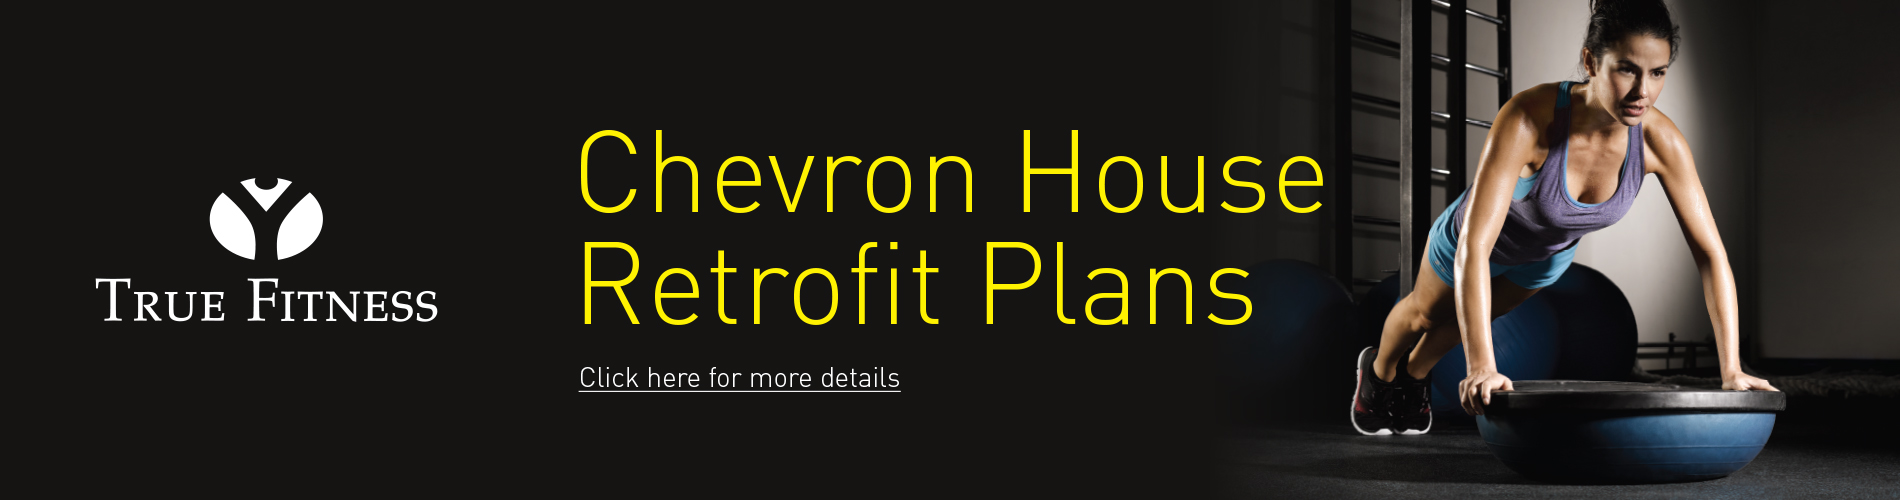 Chevron House Retrofit